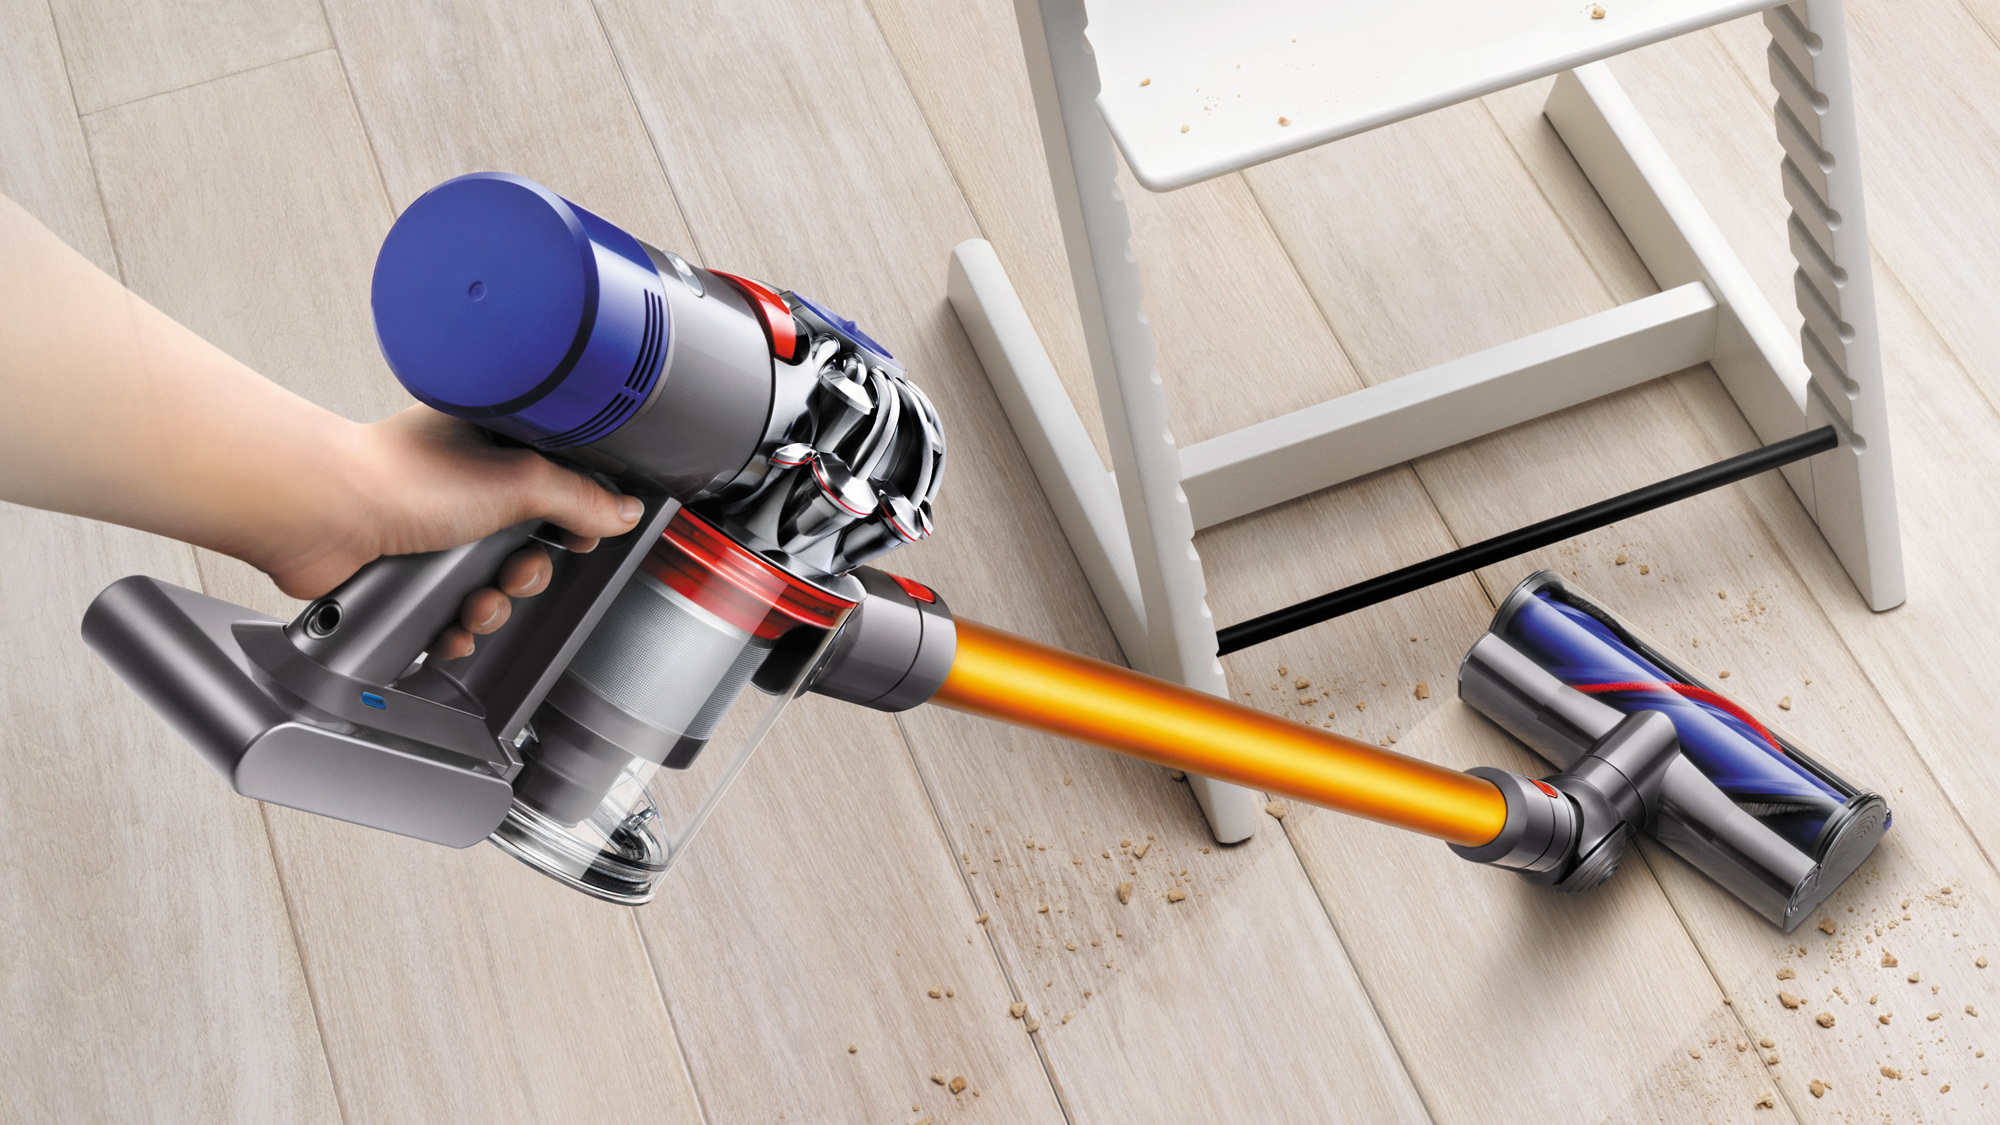 Dyson V8 Absolute Cordless Vacuum Cleaner Review